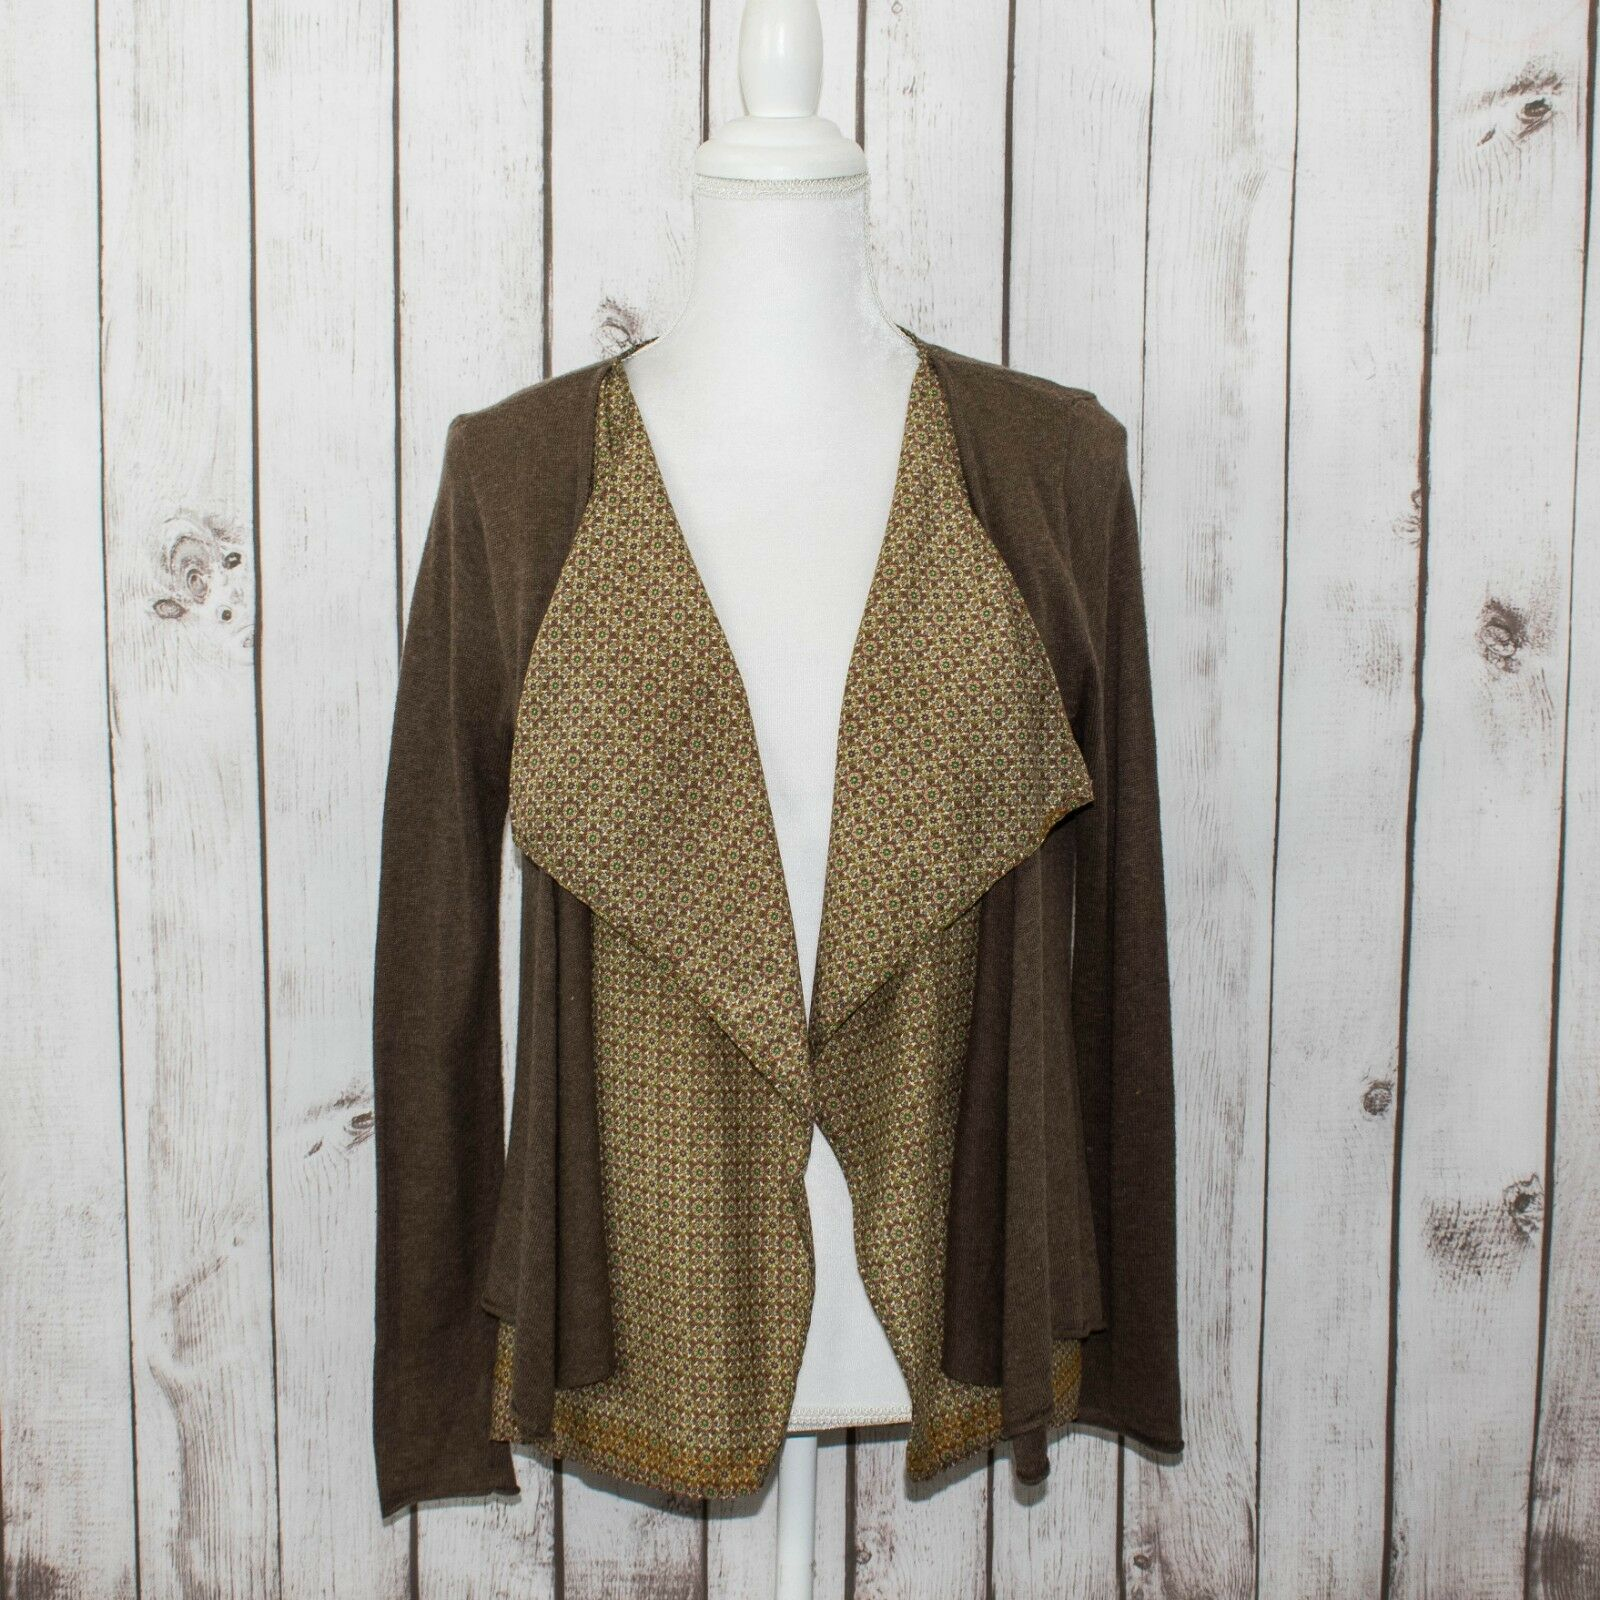 Subtle Luxury Women's Double Layer open Cardigan Top Brown Beige Sz S M